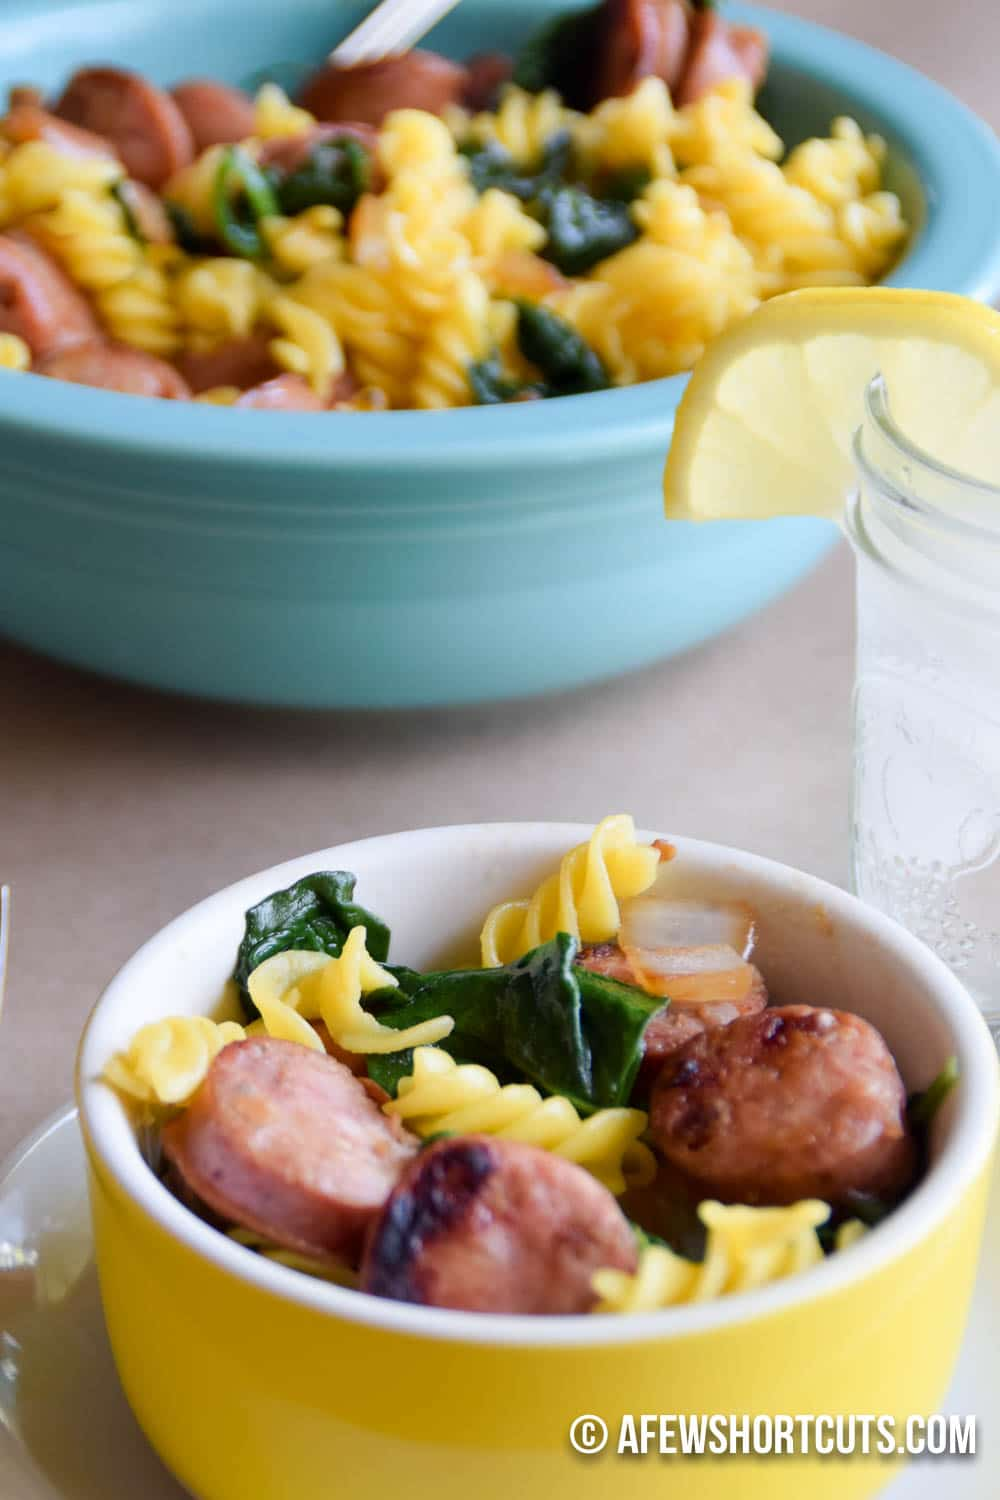 Need a fast and healthy dinner recipe? This Chicken Apple Sausage Pasta is amazing! The entire family will love it!